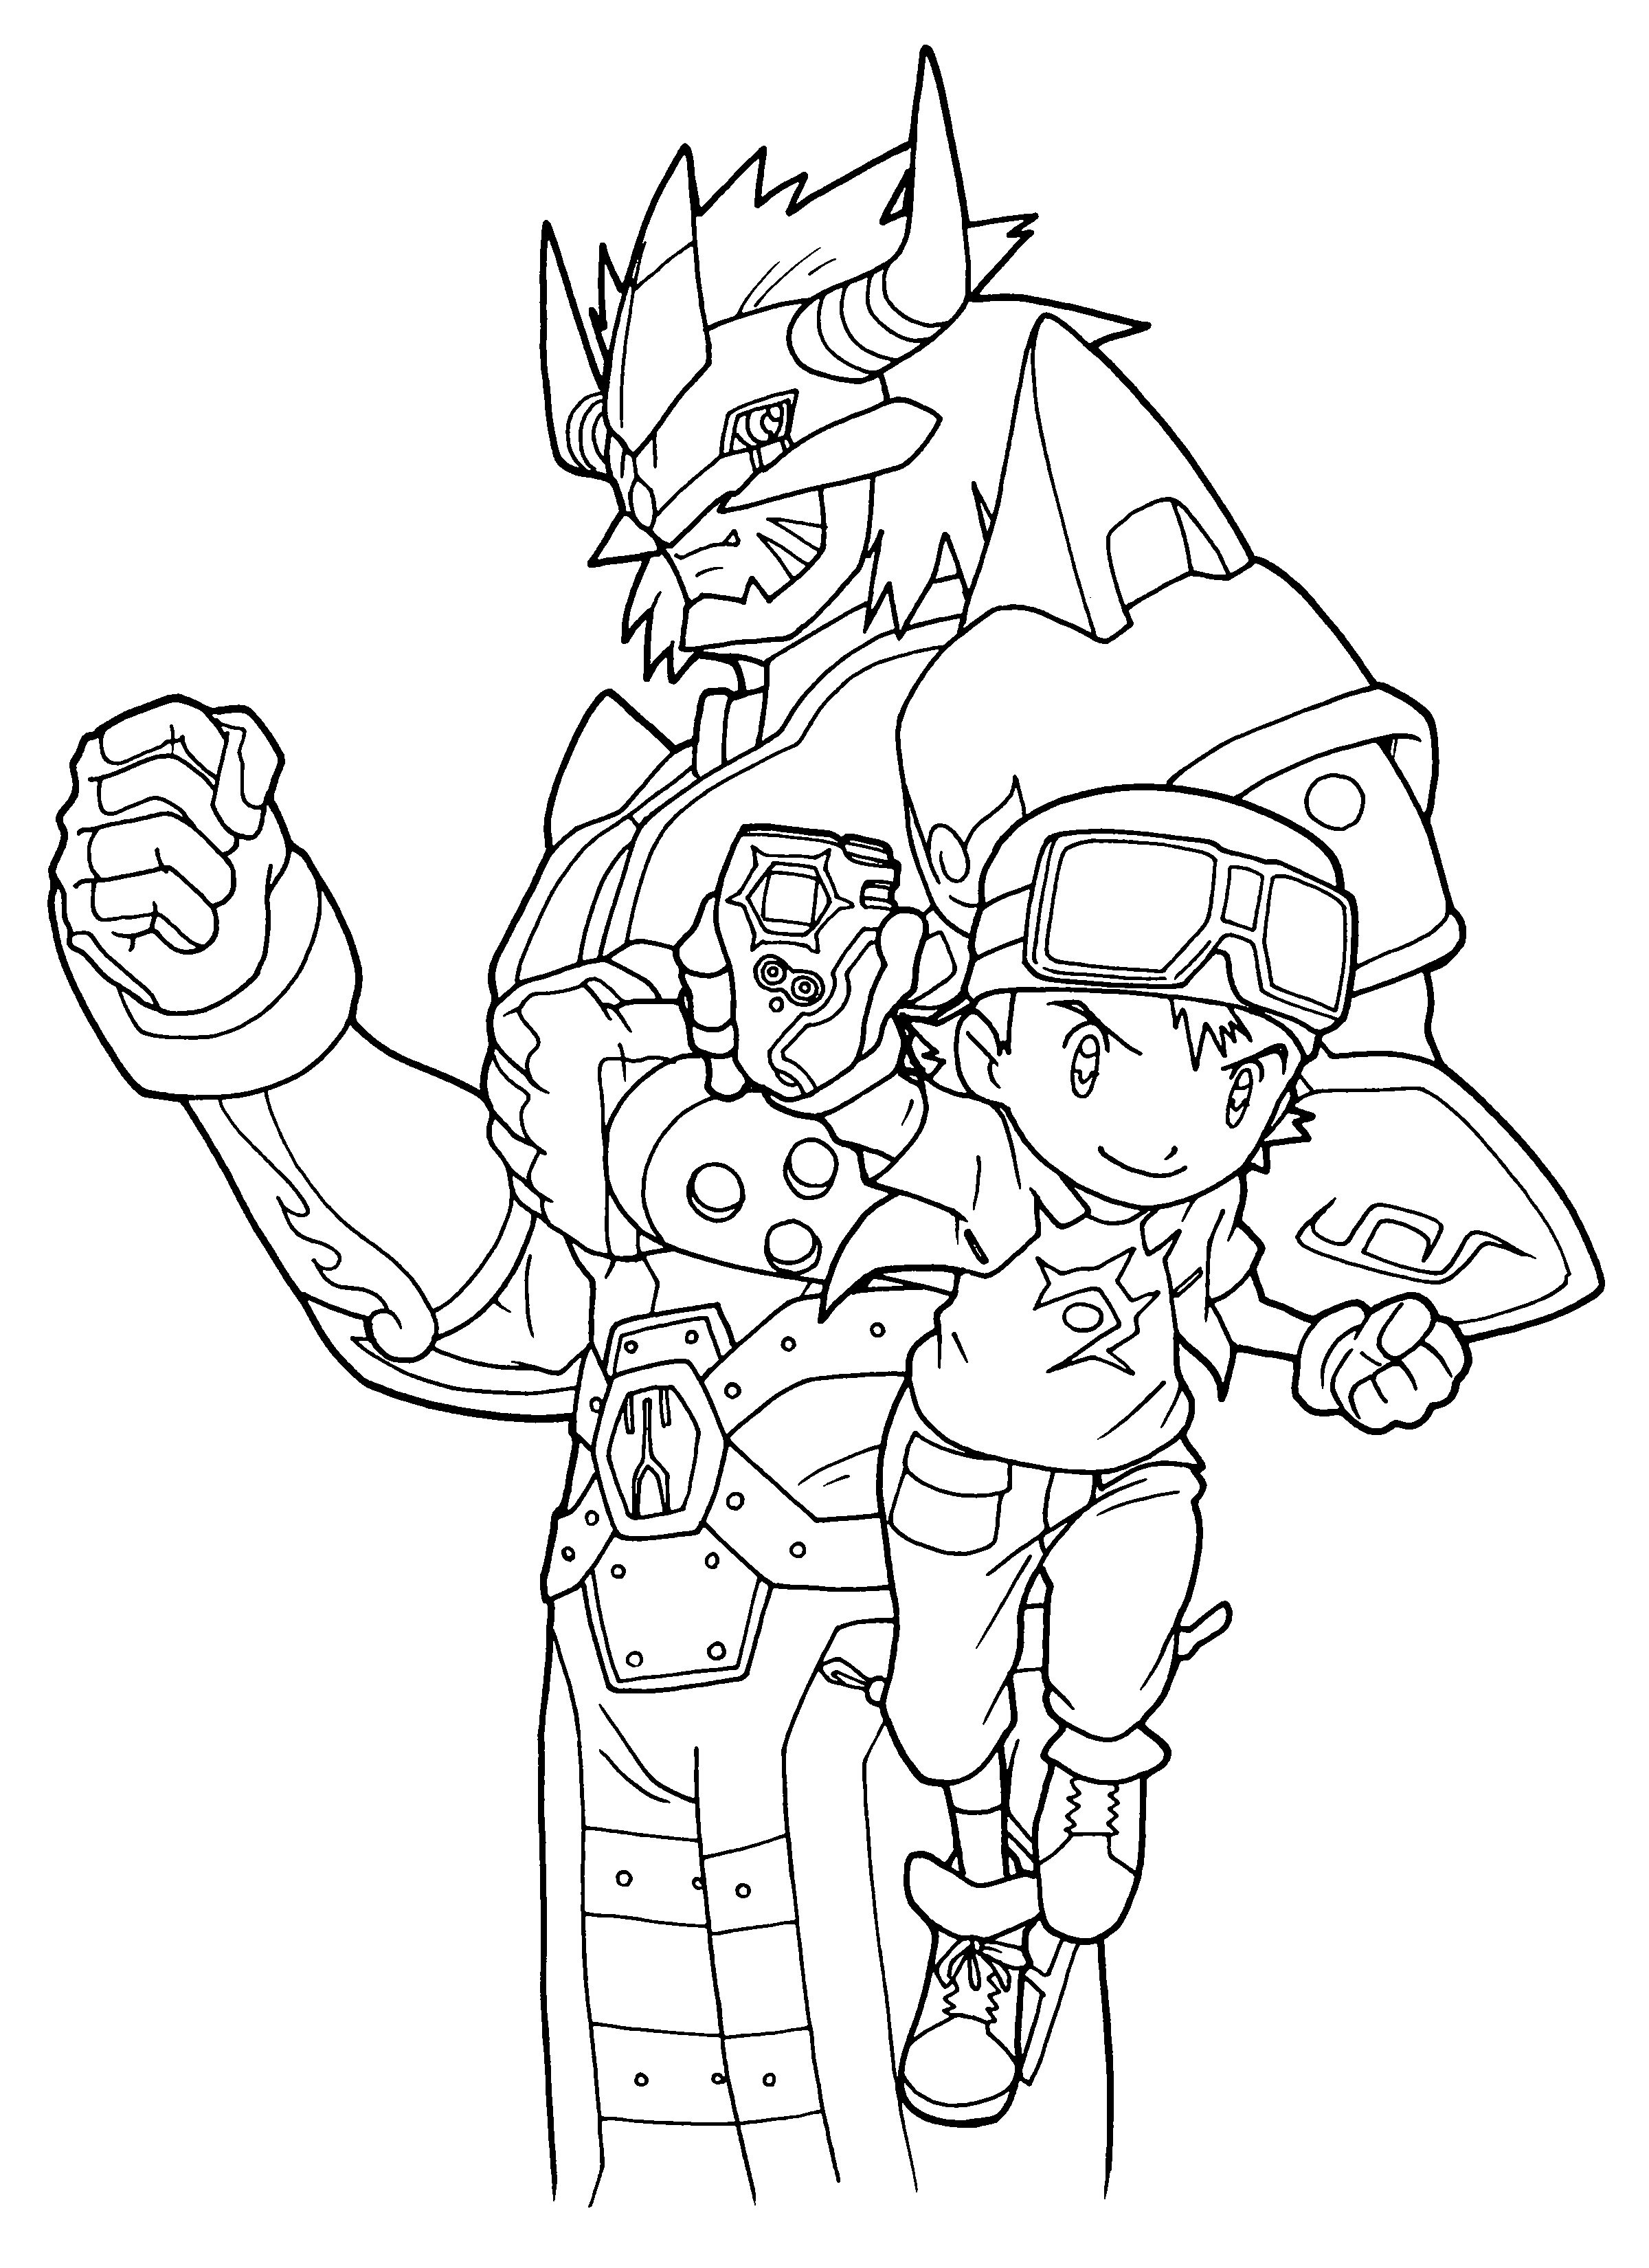 2400x3300 Coloring Pages Free Printable Best Of Free Printable Digimon